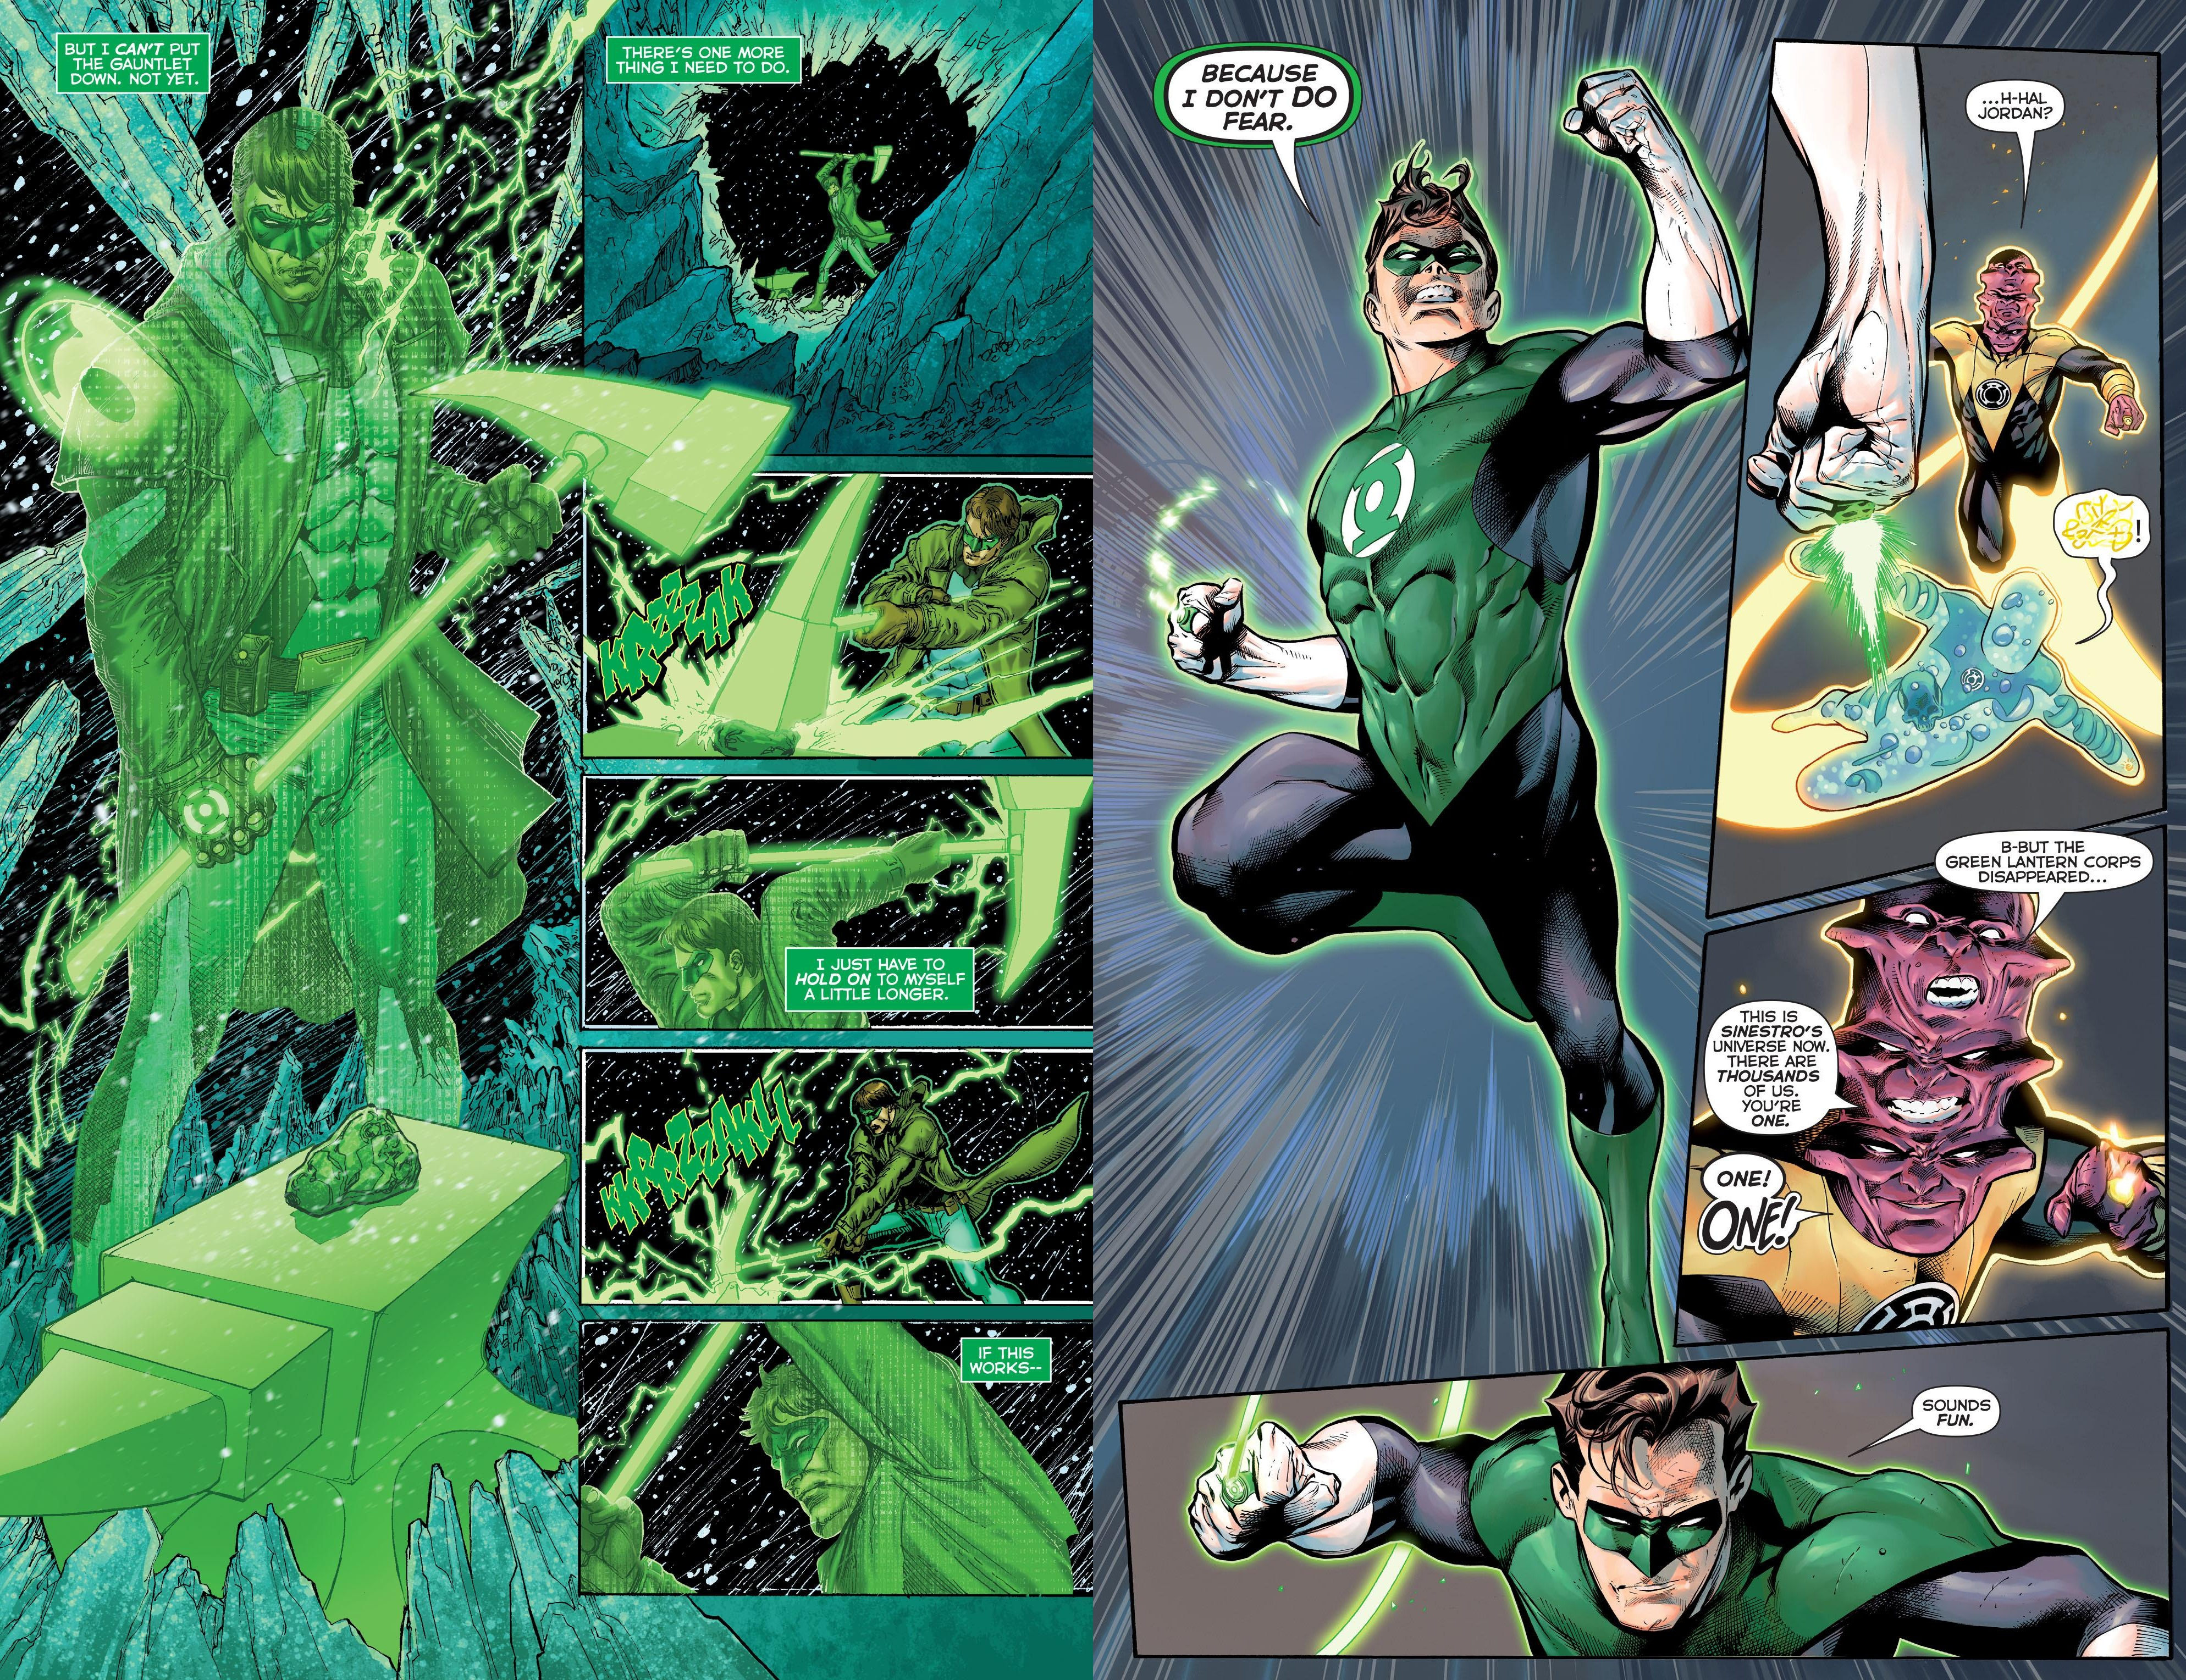 Hal Jordan and the Green Lantern Corps - Sinestro's Law review